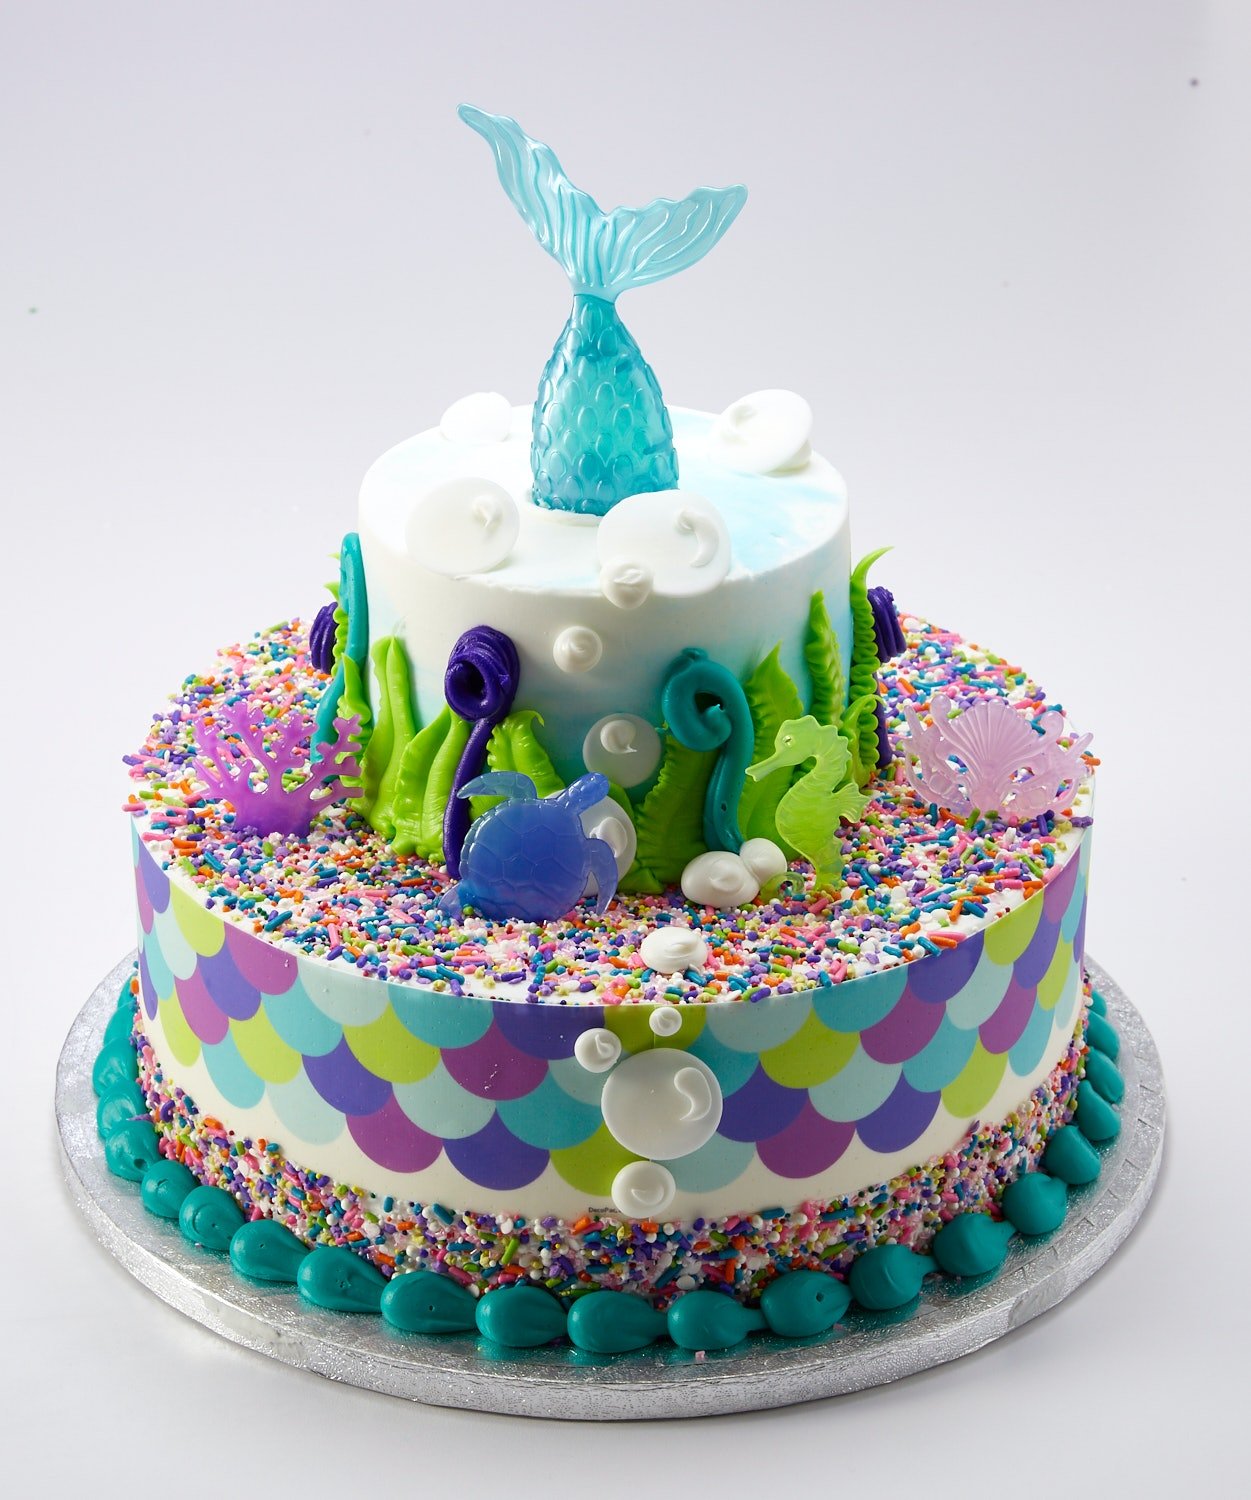 Incredible This 3 Tier Mermaid Cake From Sams Club Feeds 66 People And Costs Personalised Birthday Cards Paralily Jamesorg